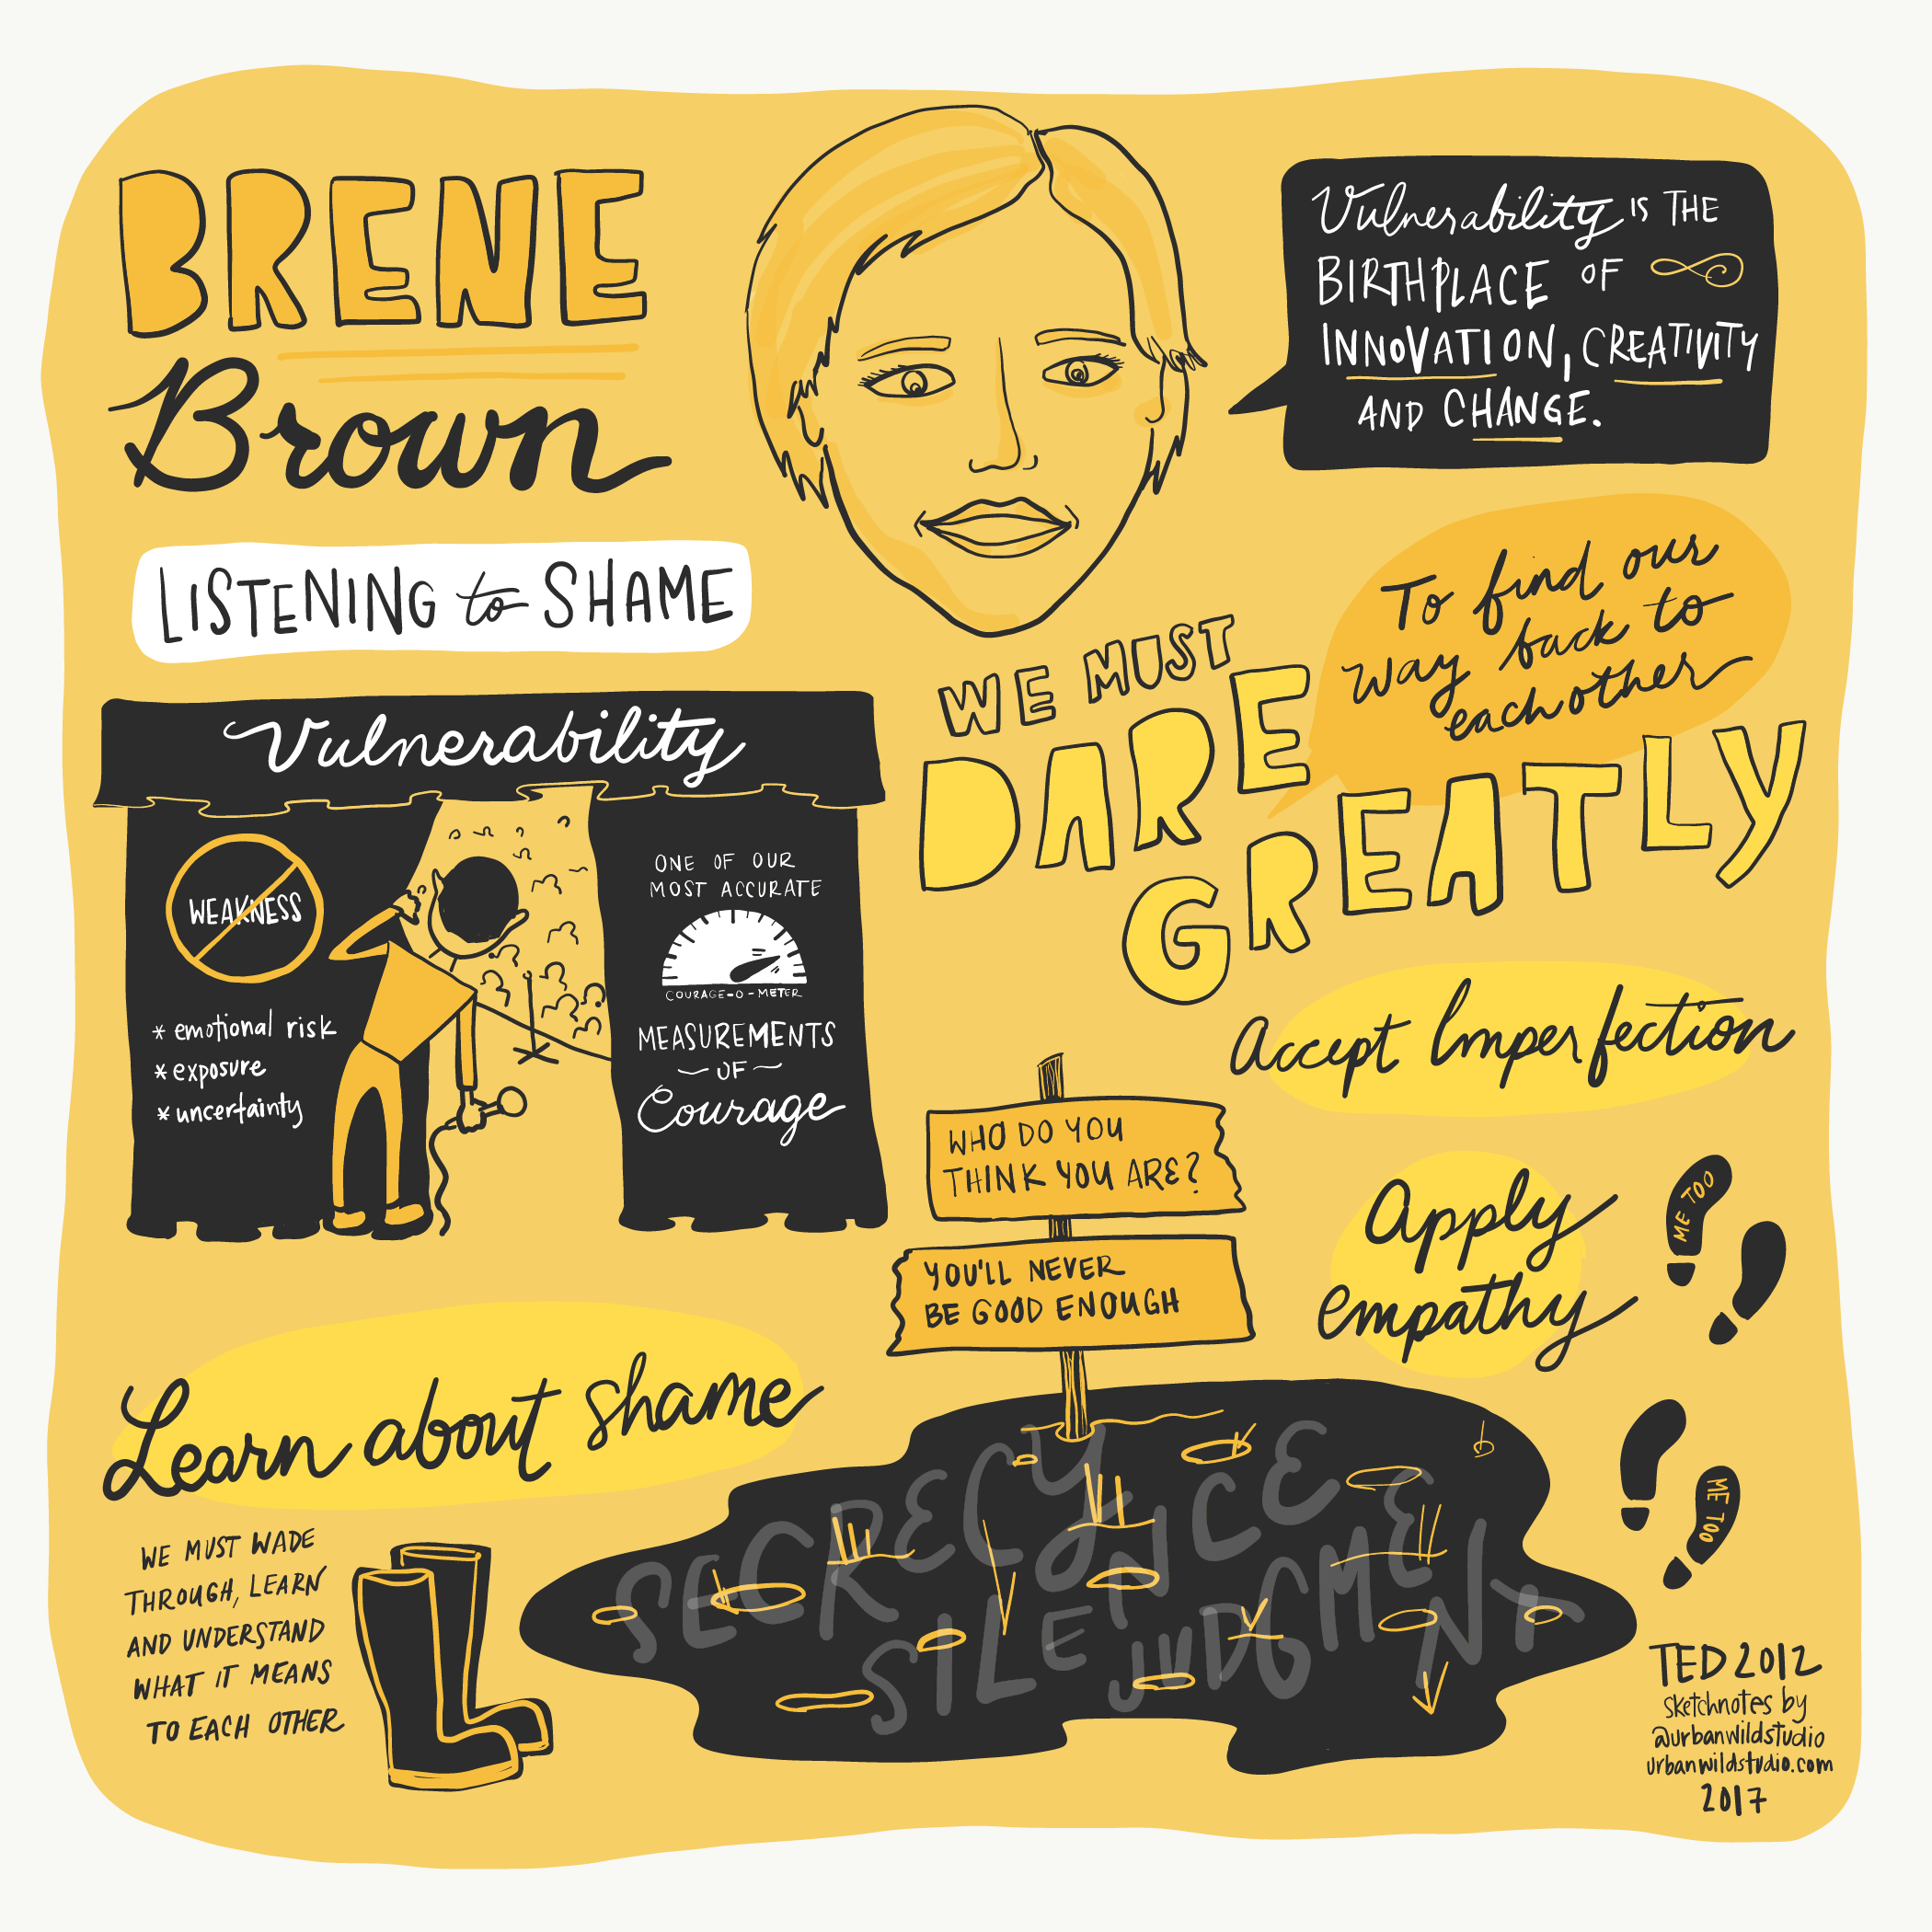 Brene Brown Daring Greatly Listening to Shame TED 2012 Sketchnotes Illustration Urban Wild Studio